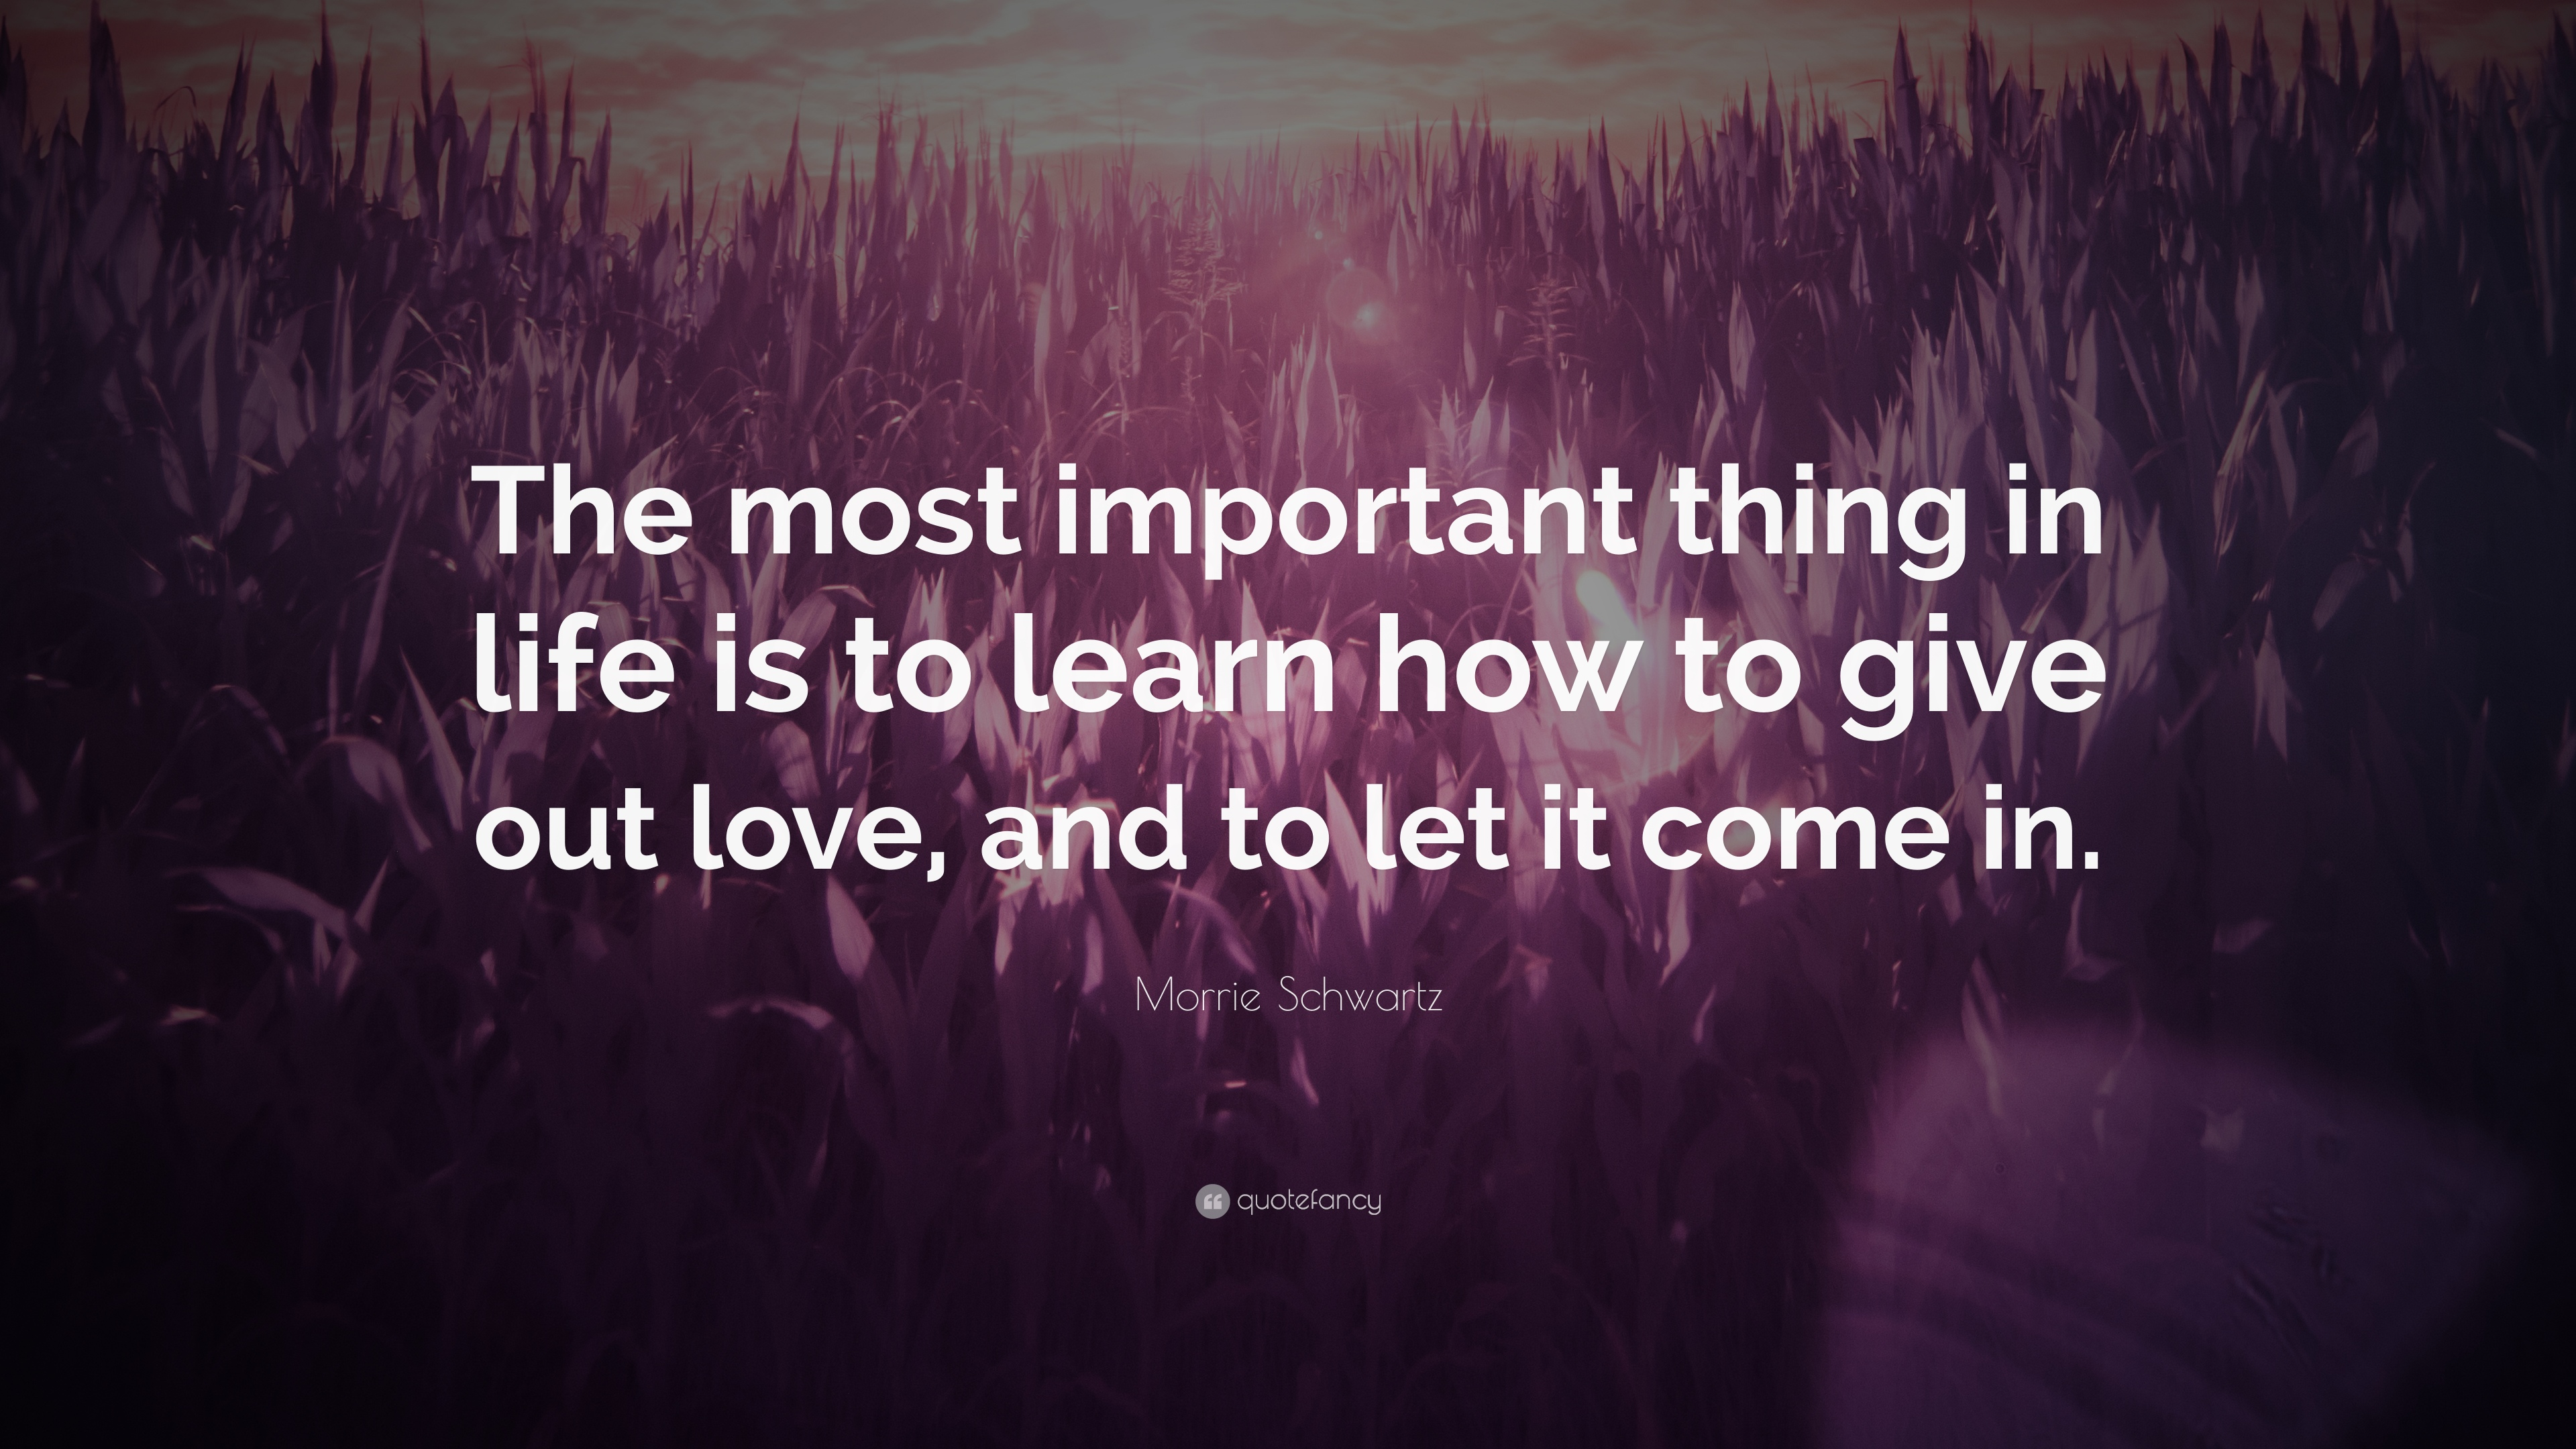 Morrie Schwartz Quote: The most important thing in life